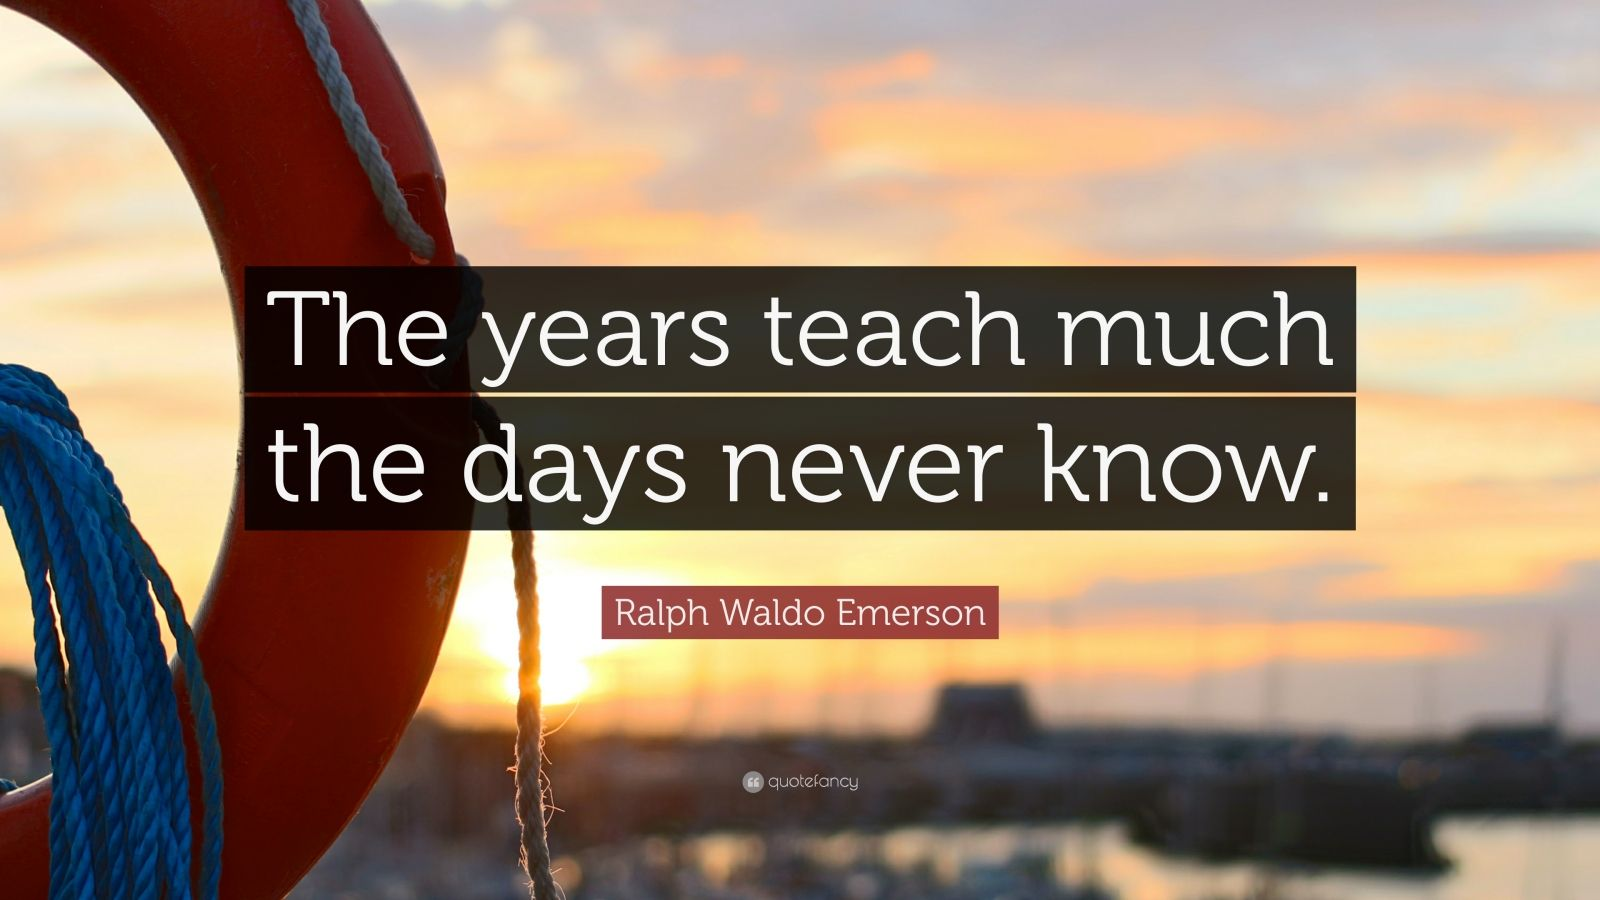 """Ralph Waldo Emerson Quote: """"The years teach much the days never know."""""""